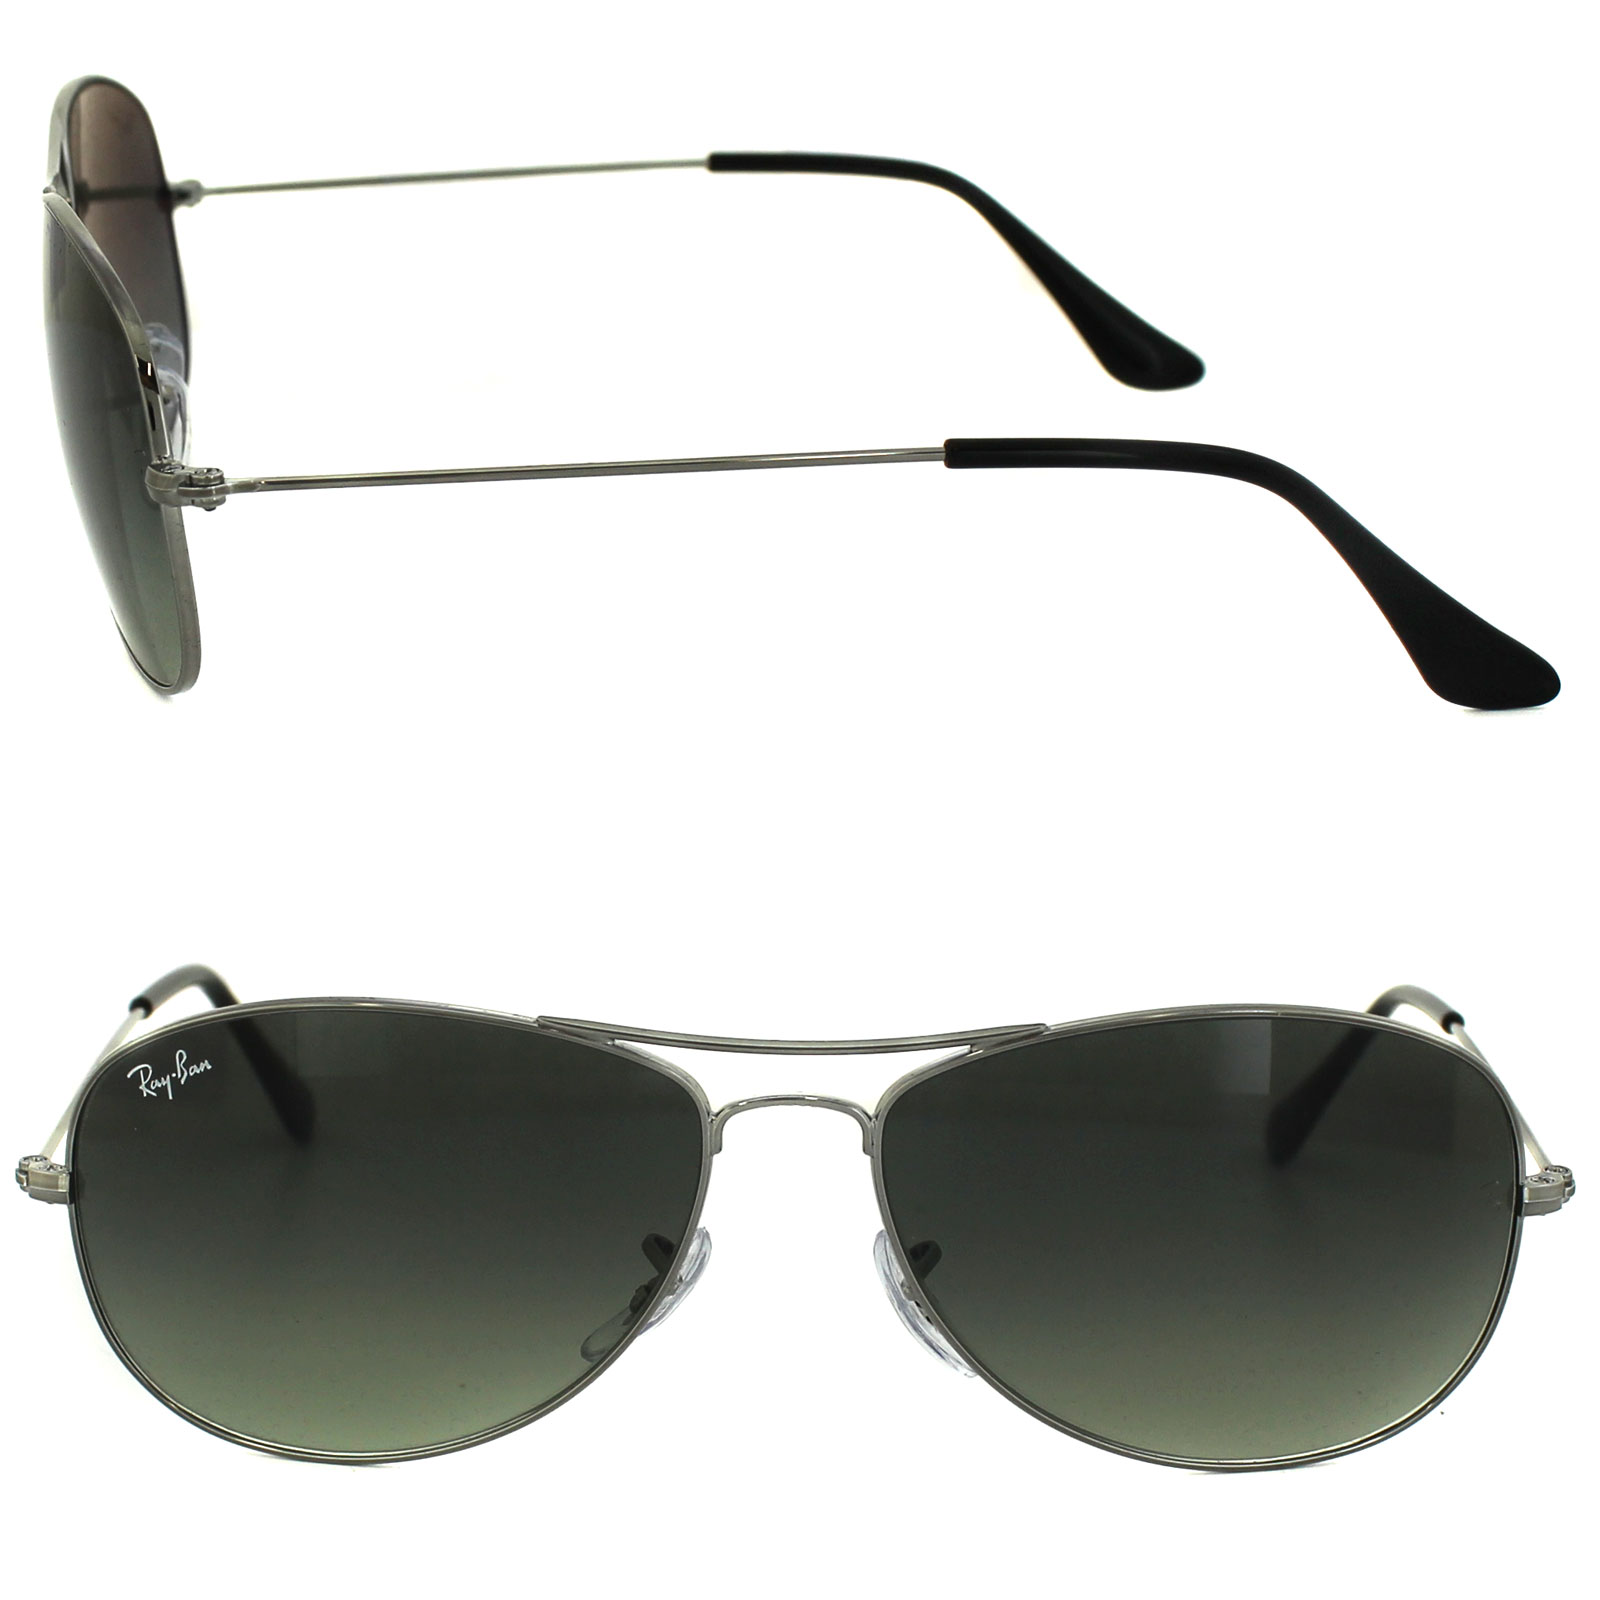 dcc7cf9b8bc Cheap Ray-Ban Cockpit 3362 Sunglasses - Discounted Sunglasses